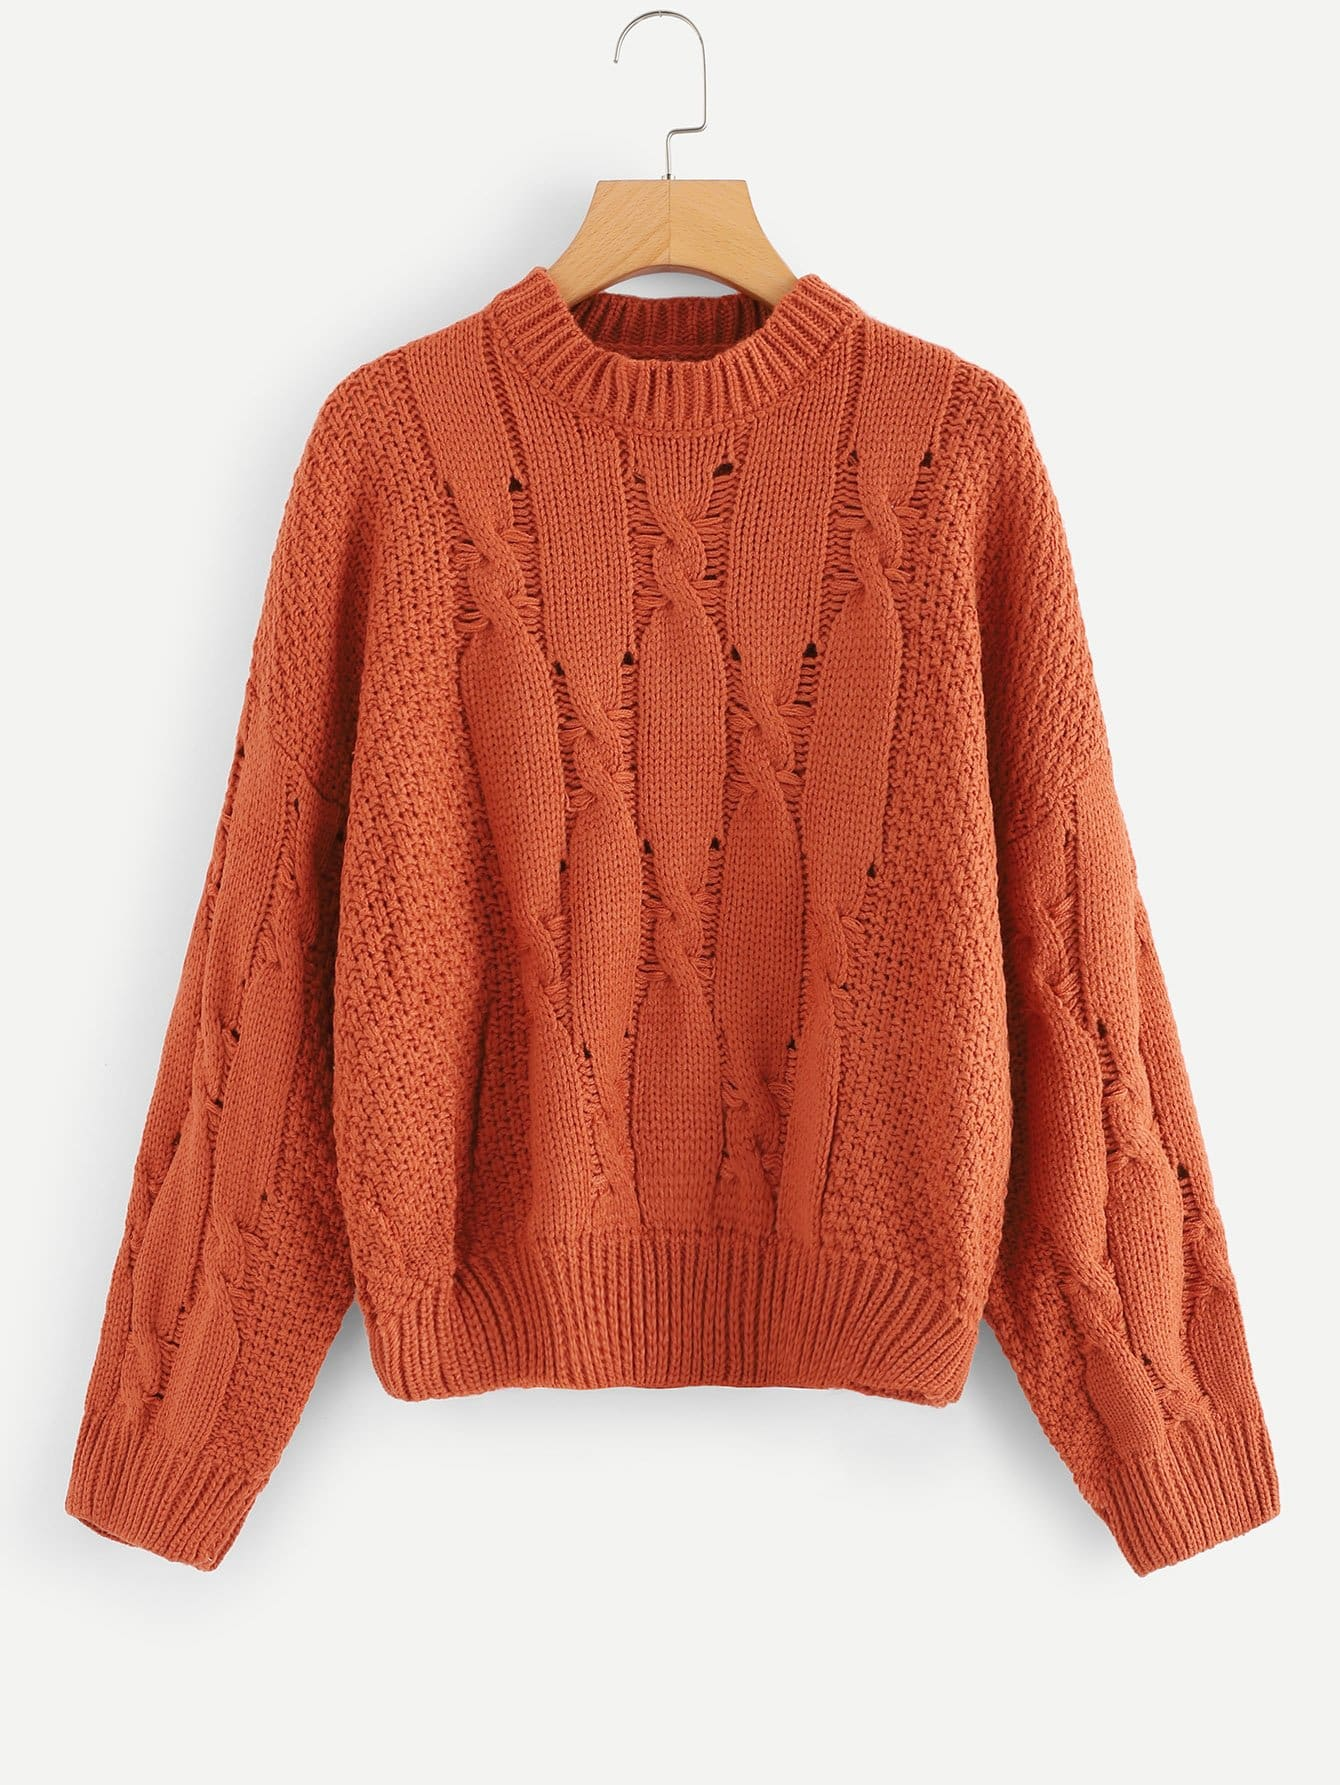 Hollow Out Cable Sweater hollow out textured sweater